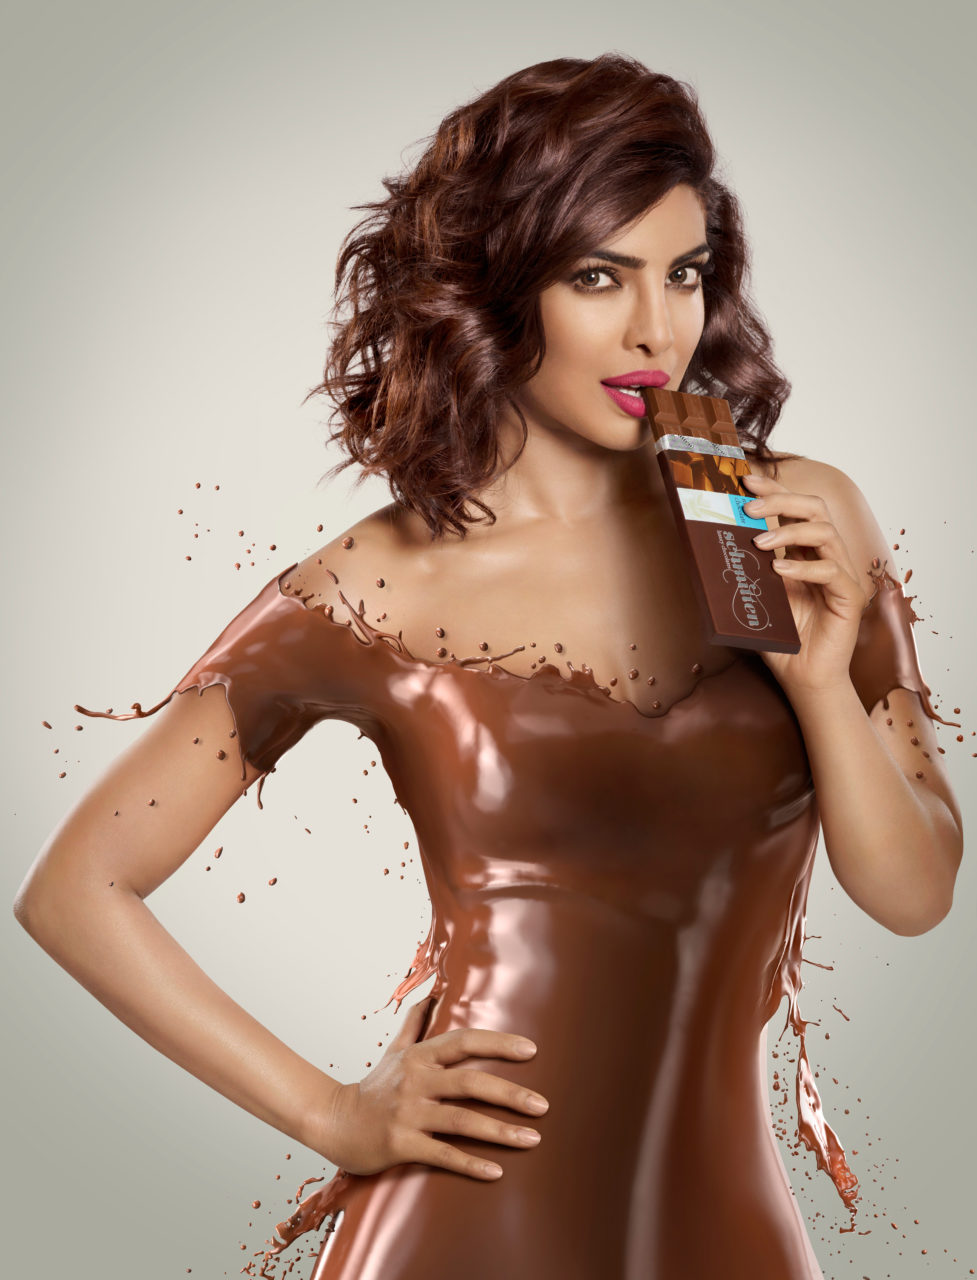 priyanka chopra covered in chocolate shcmitten ad could be made as one of our freelance graphic design jobs